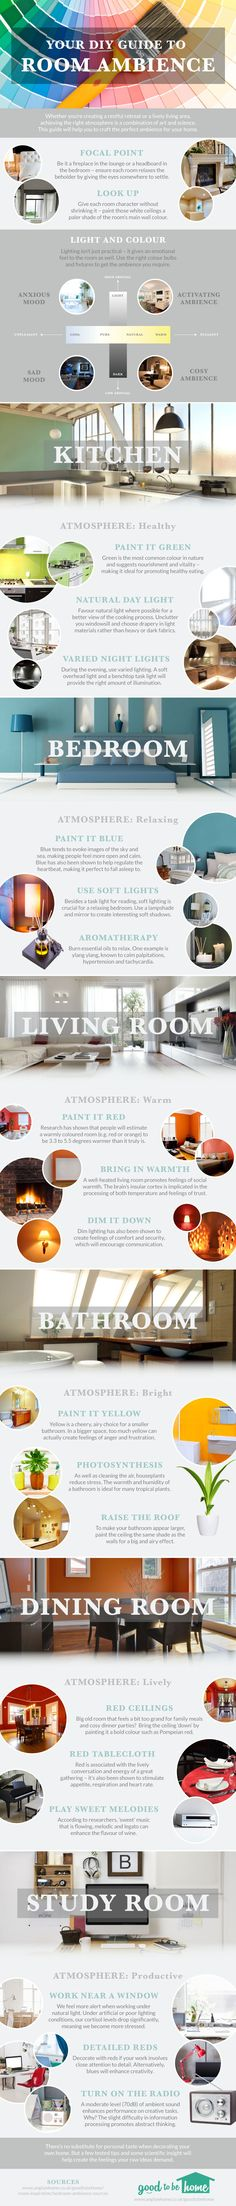 Your DIY Guide to Room Ambience #infographic #Home #HomeImprovement #DIY #infografía